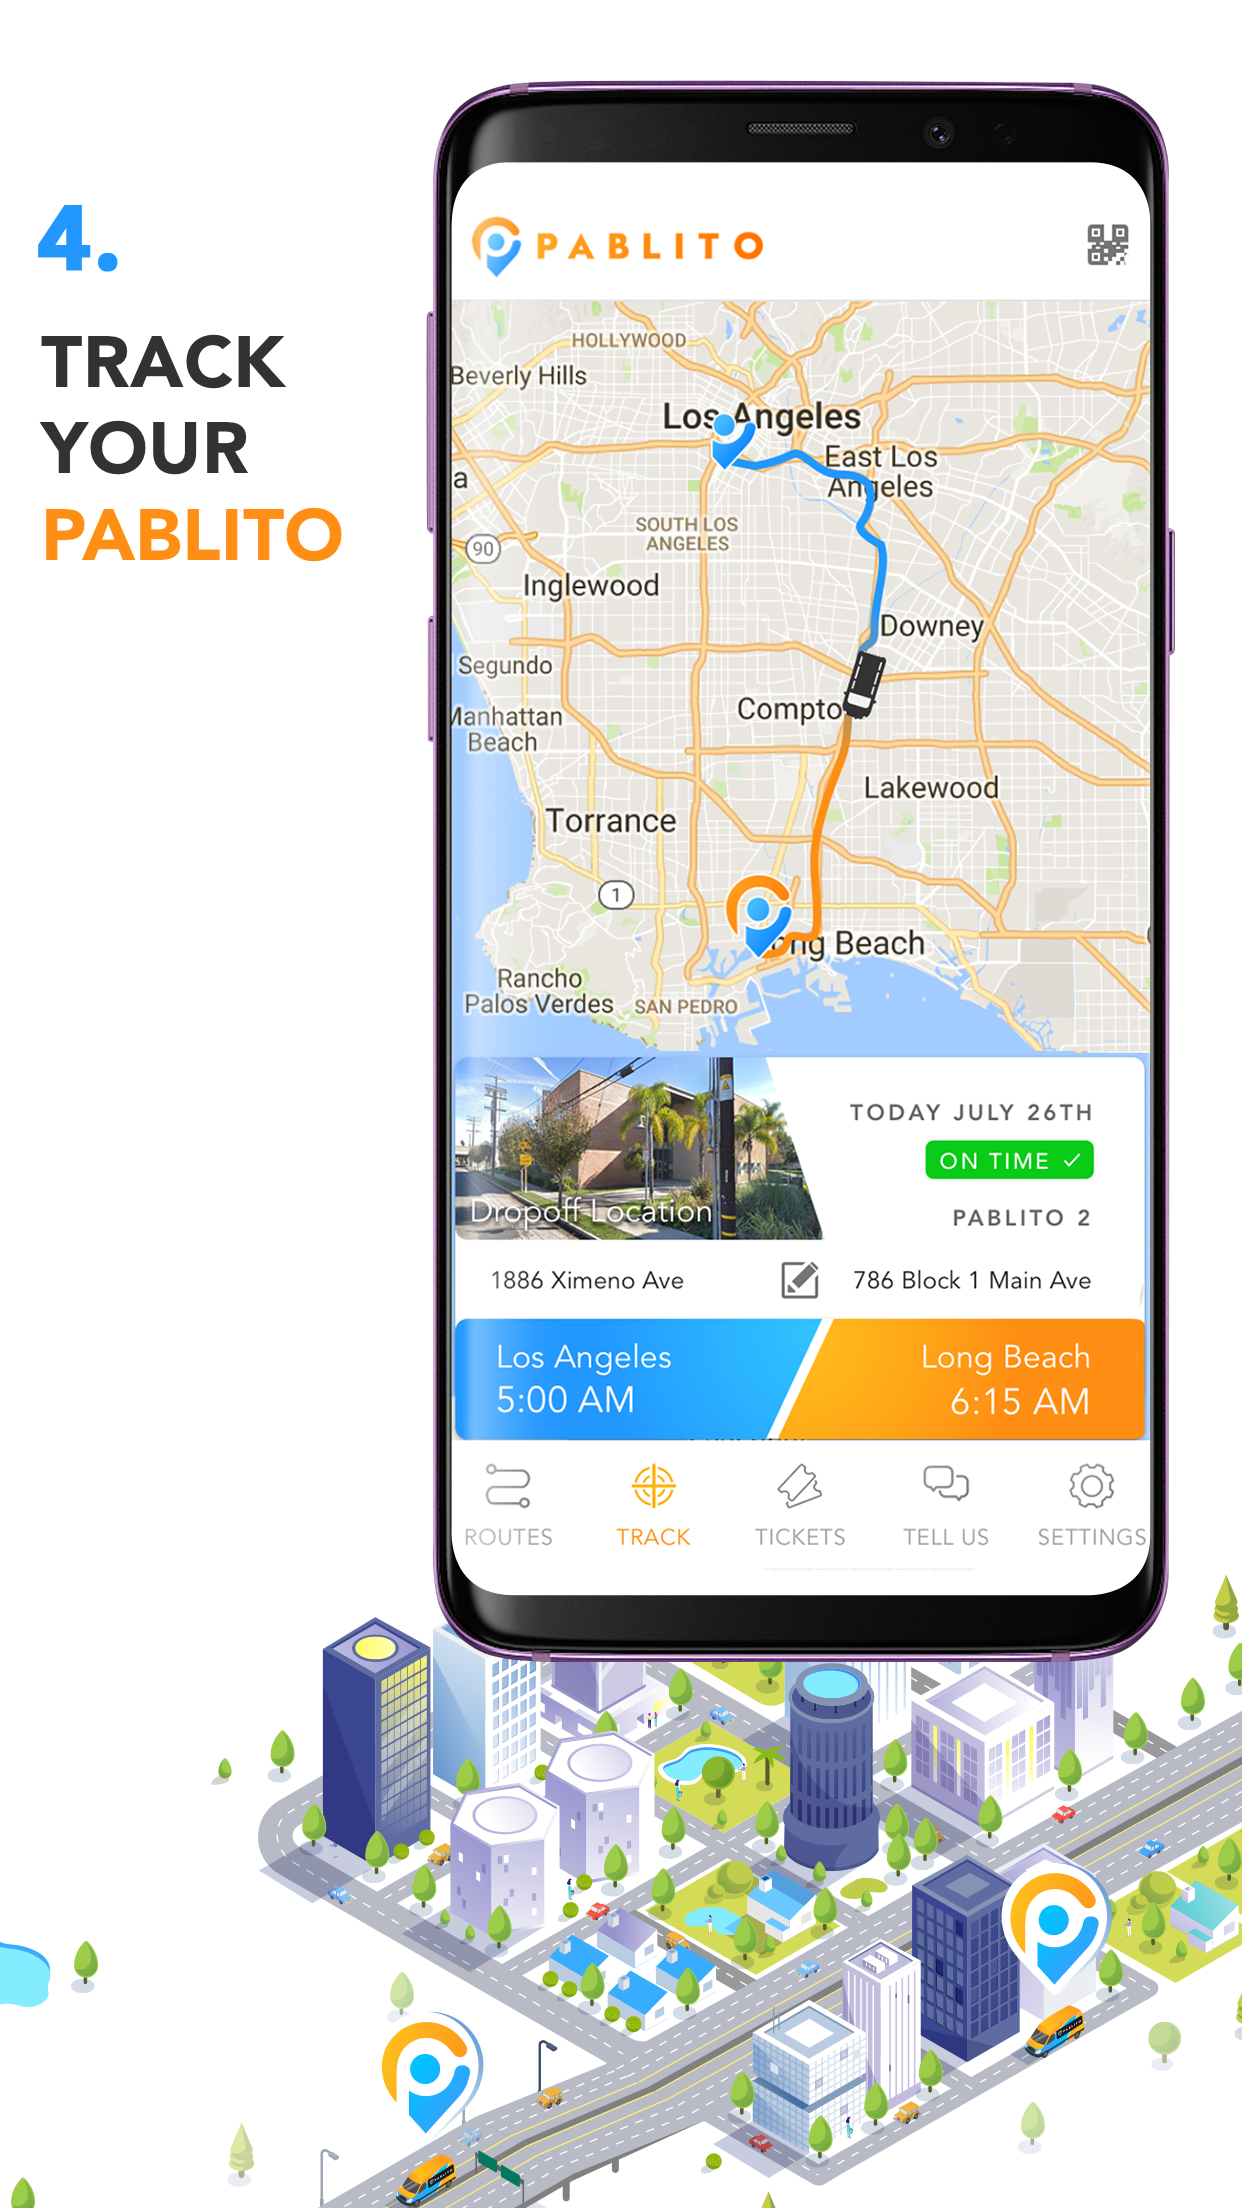 Appstore images for Pablito